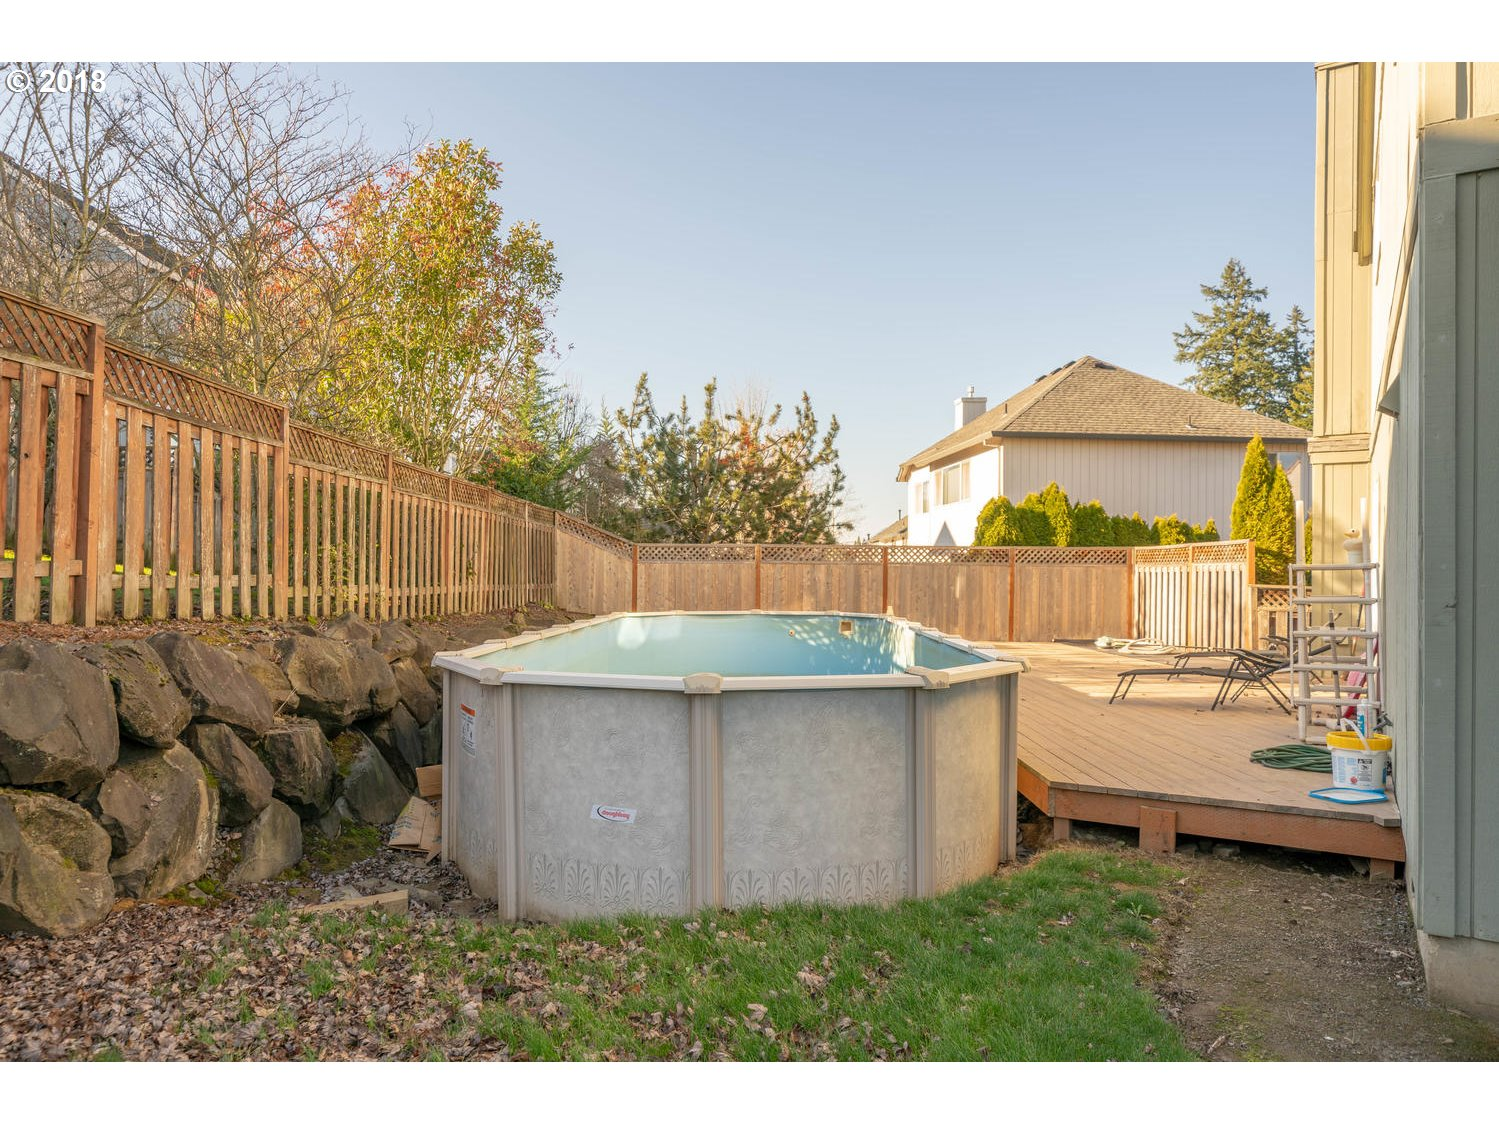 2070 sq. ft 3 bedrooms 2 bathrooms  House For Sale,Beaverton, OR